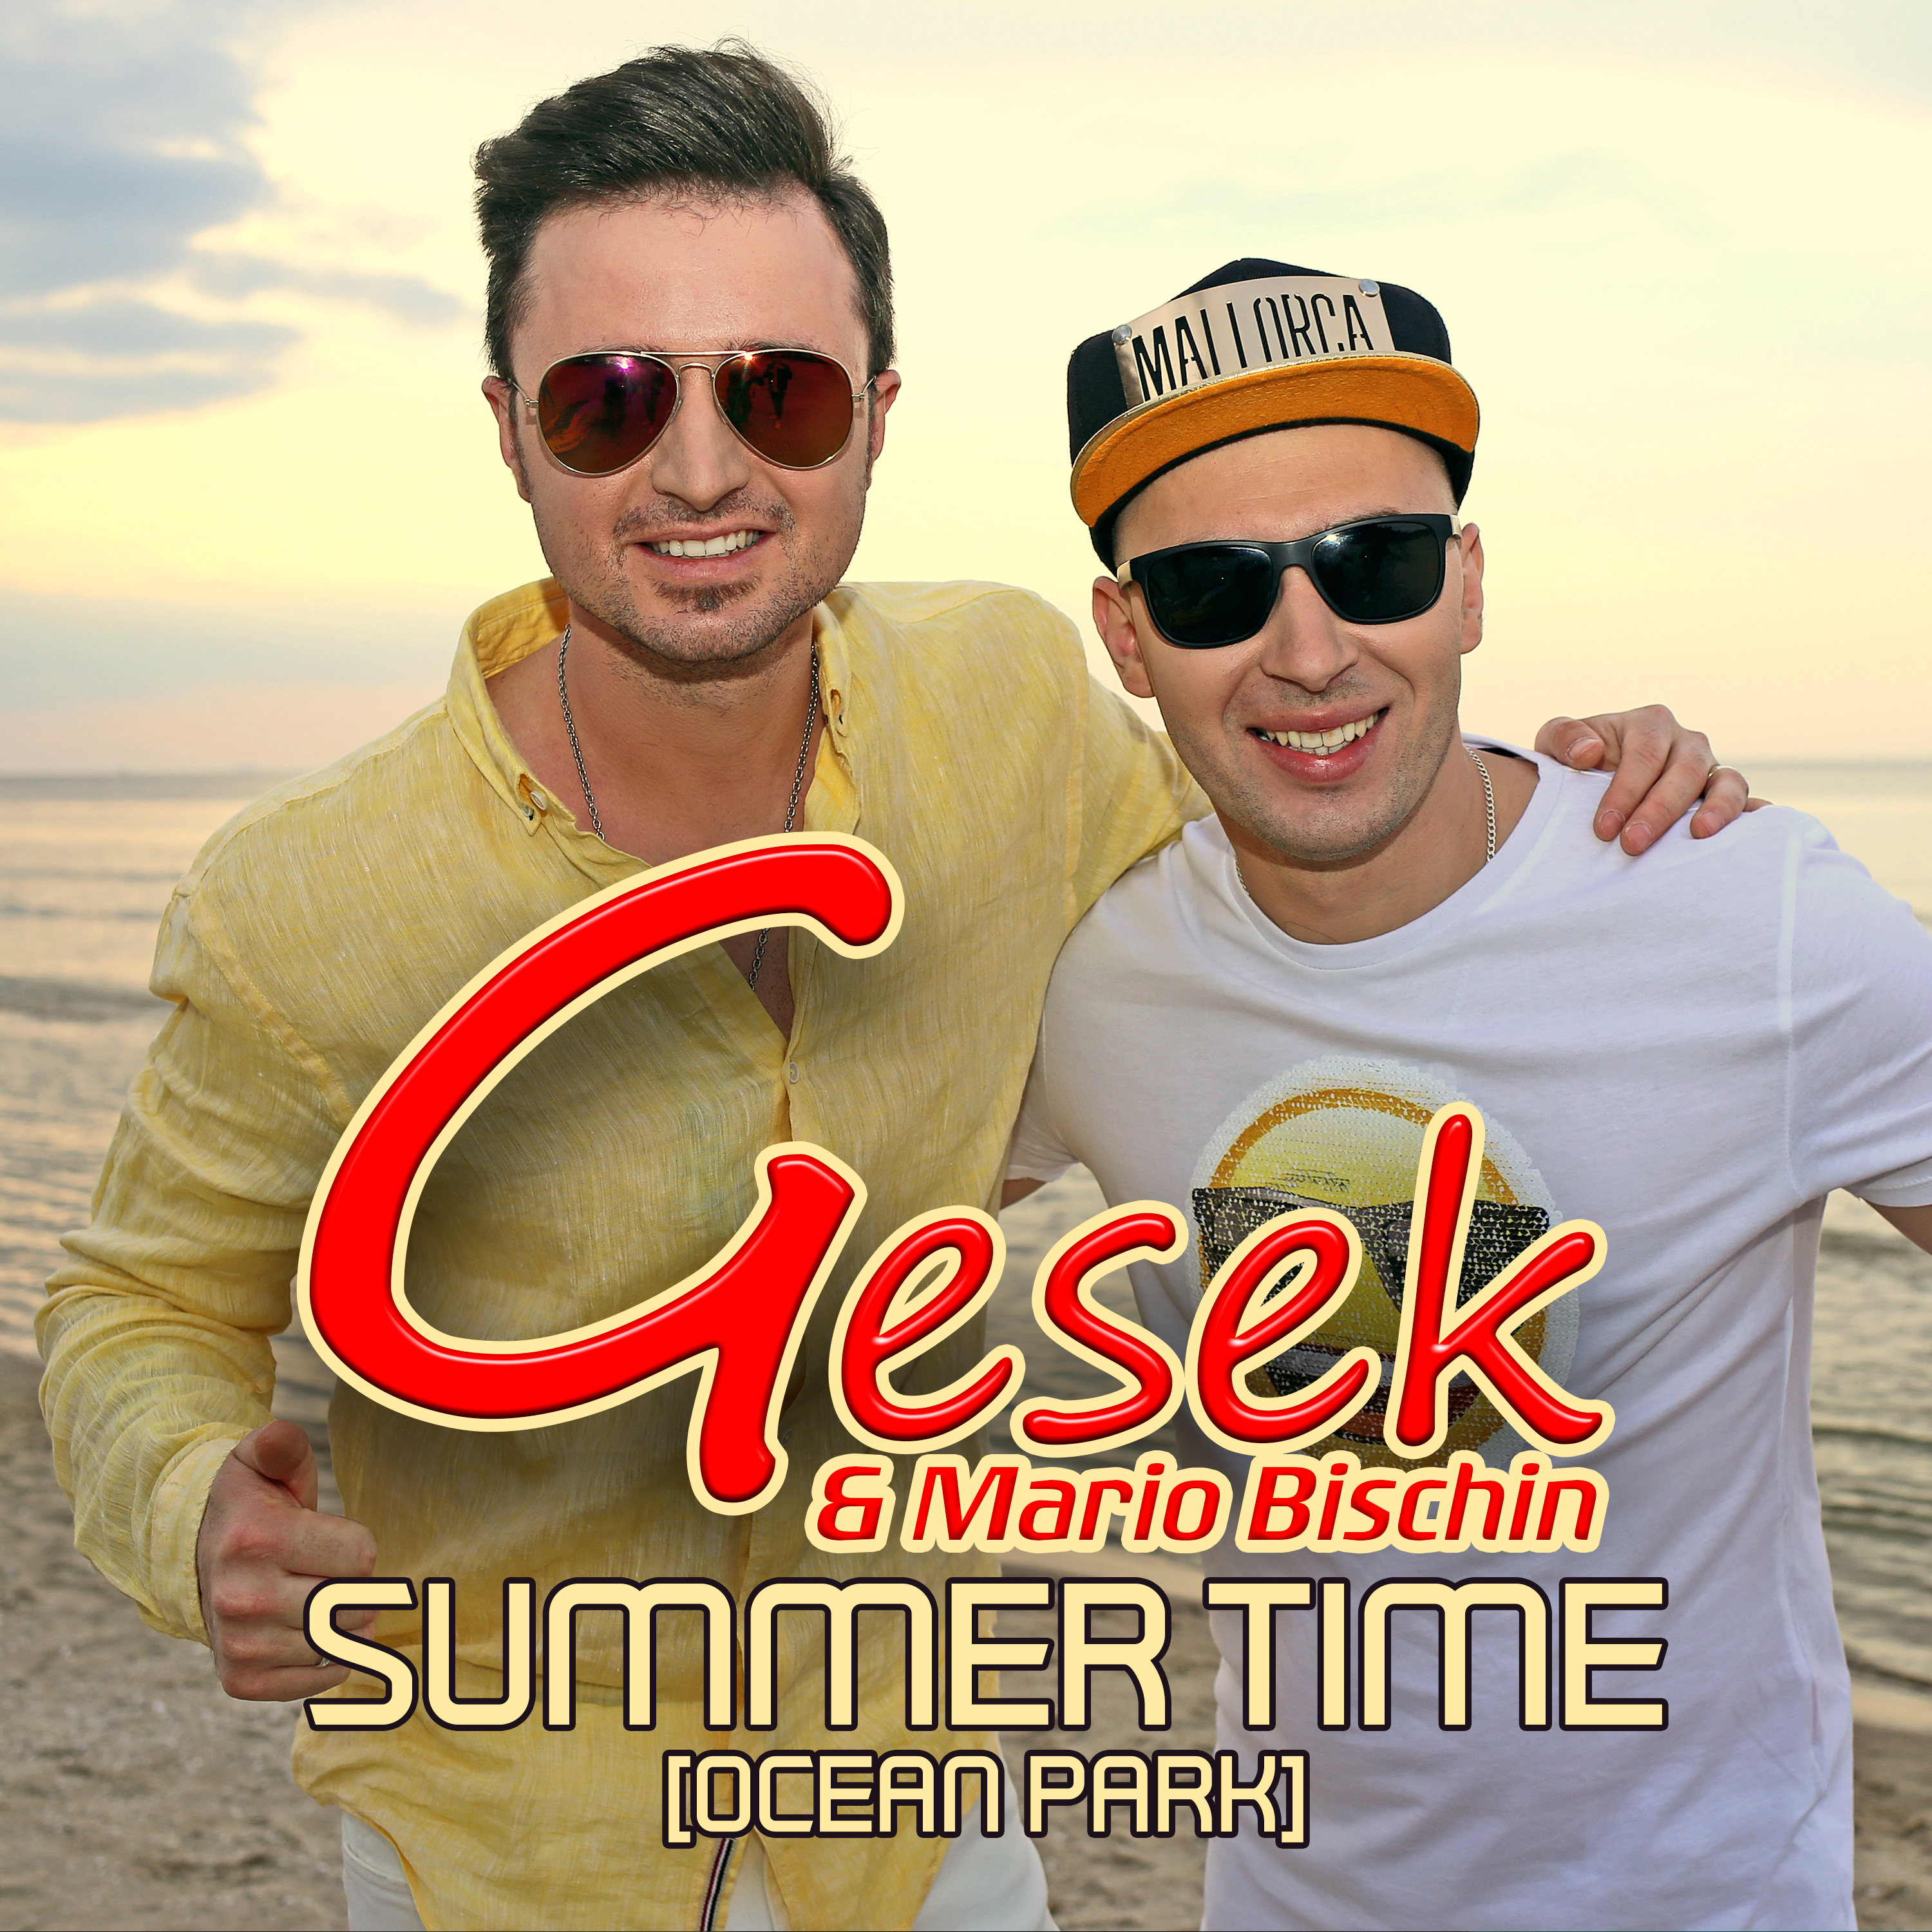 Mario Bischin & Gesek - Summer Time